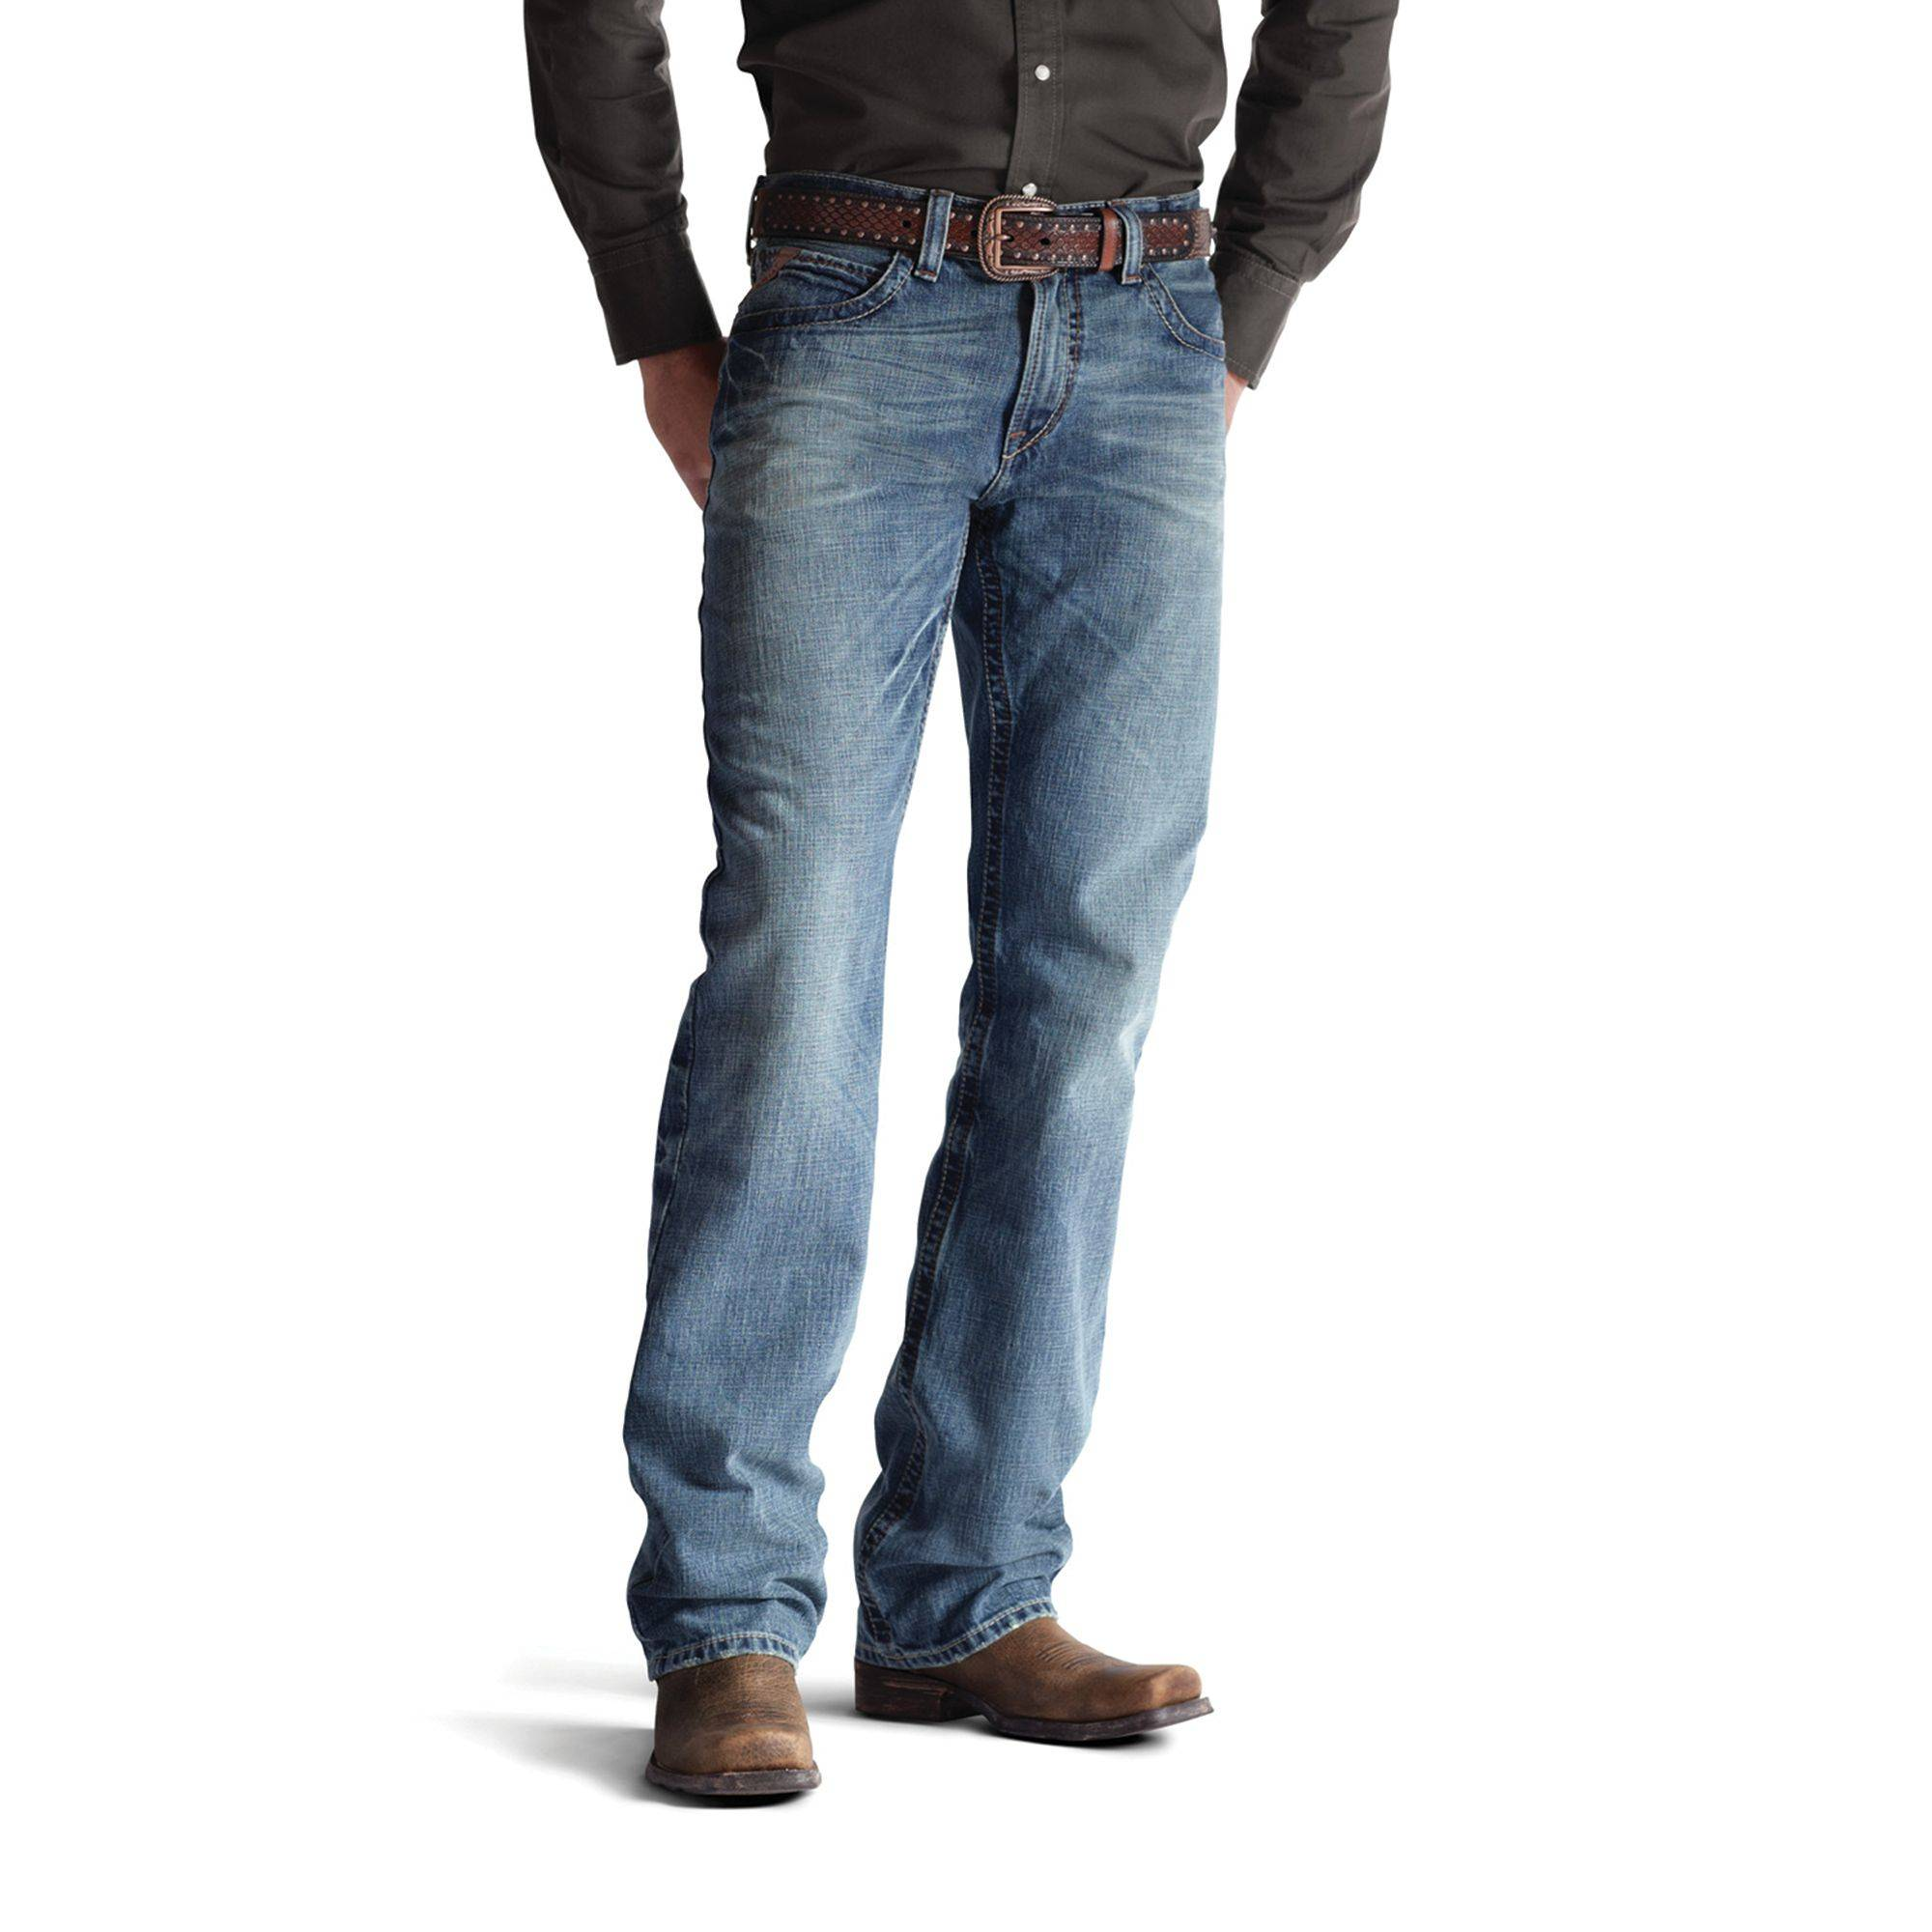 Ariat M4 Low Rise Jeans - Men's, Scoundrel